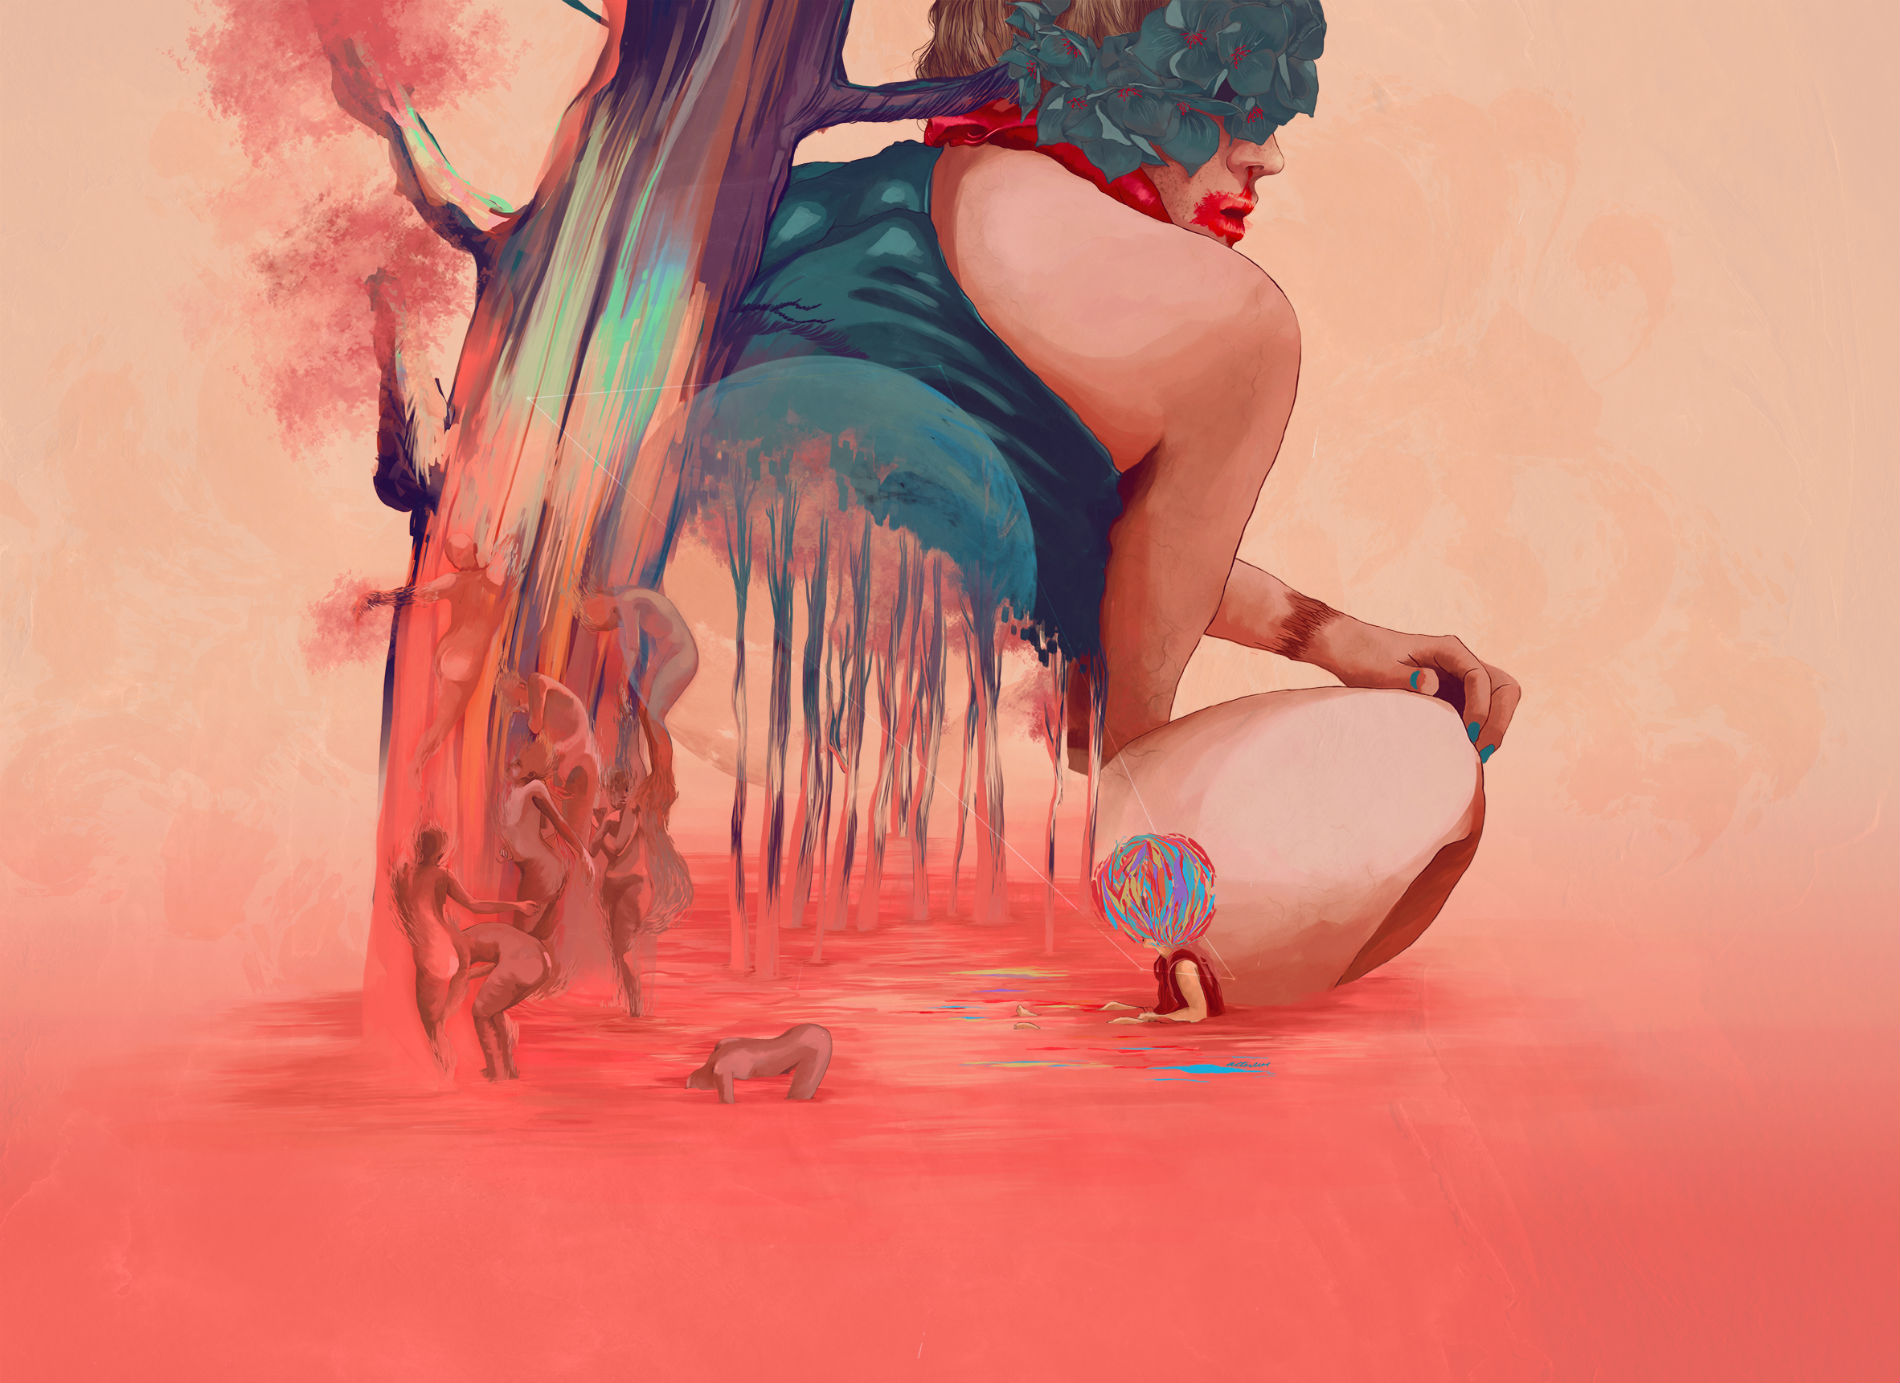 Magical Futuristic Illustrations by Colombian Artist